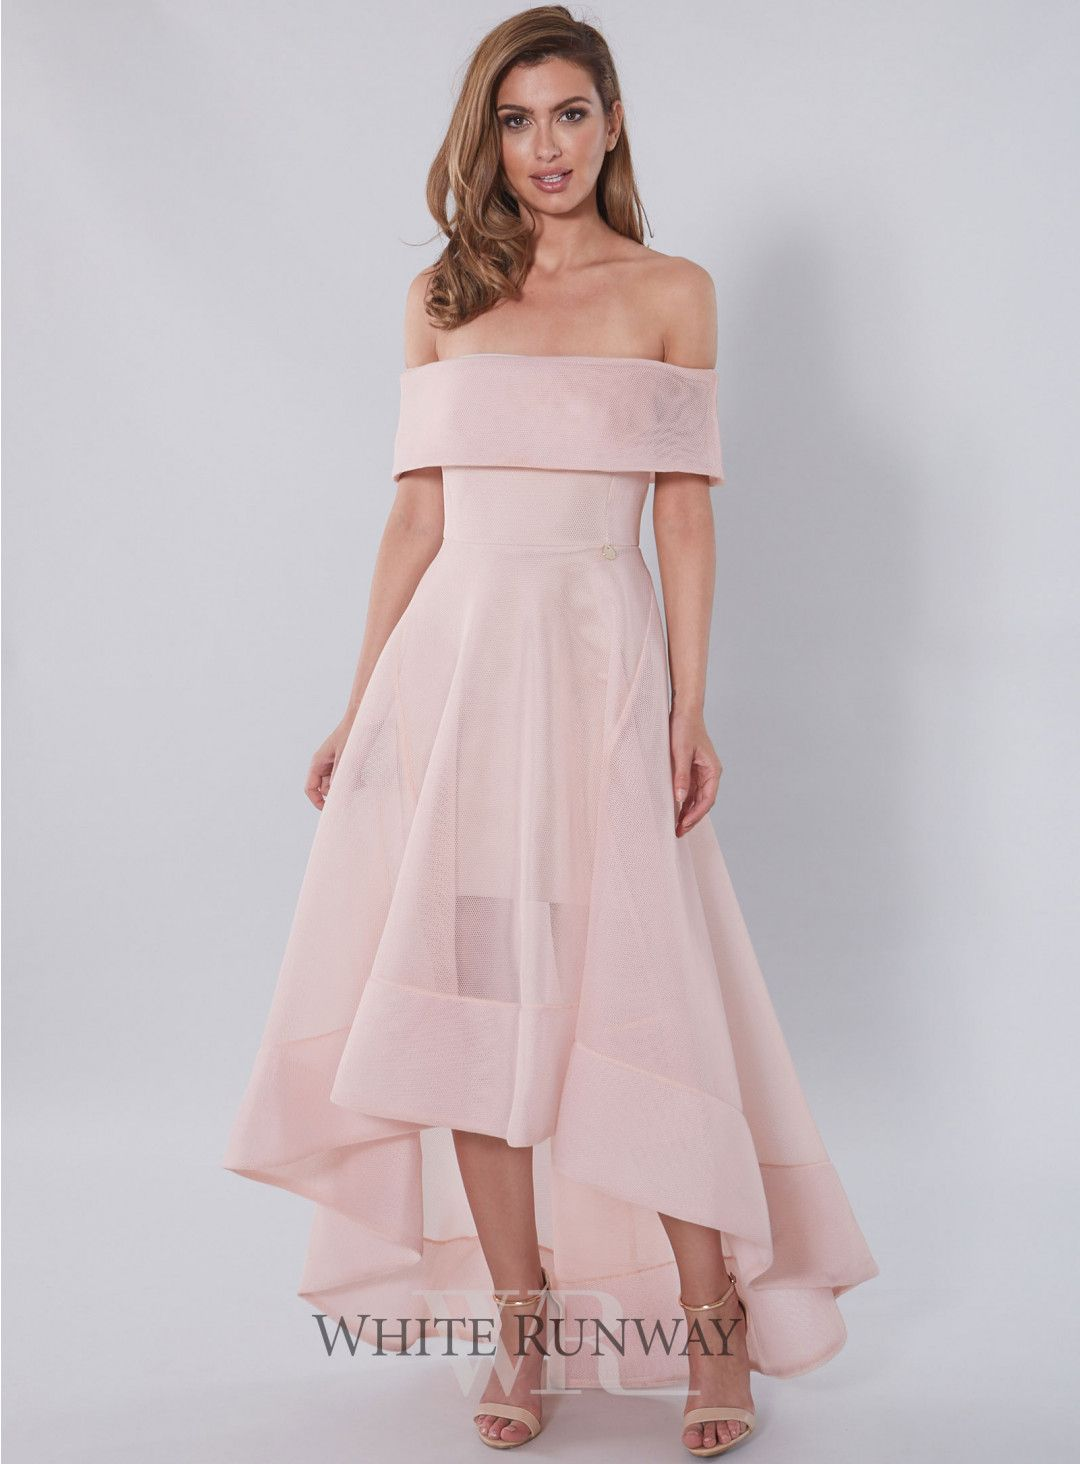 Tulip dress a contemporary gown by bronx banco a flattering tulip dress a contemporary gown by bronx banco a flattering off shoulder style ombrellifo Choice Image